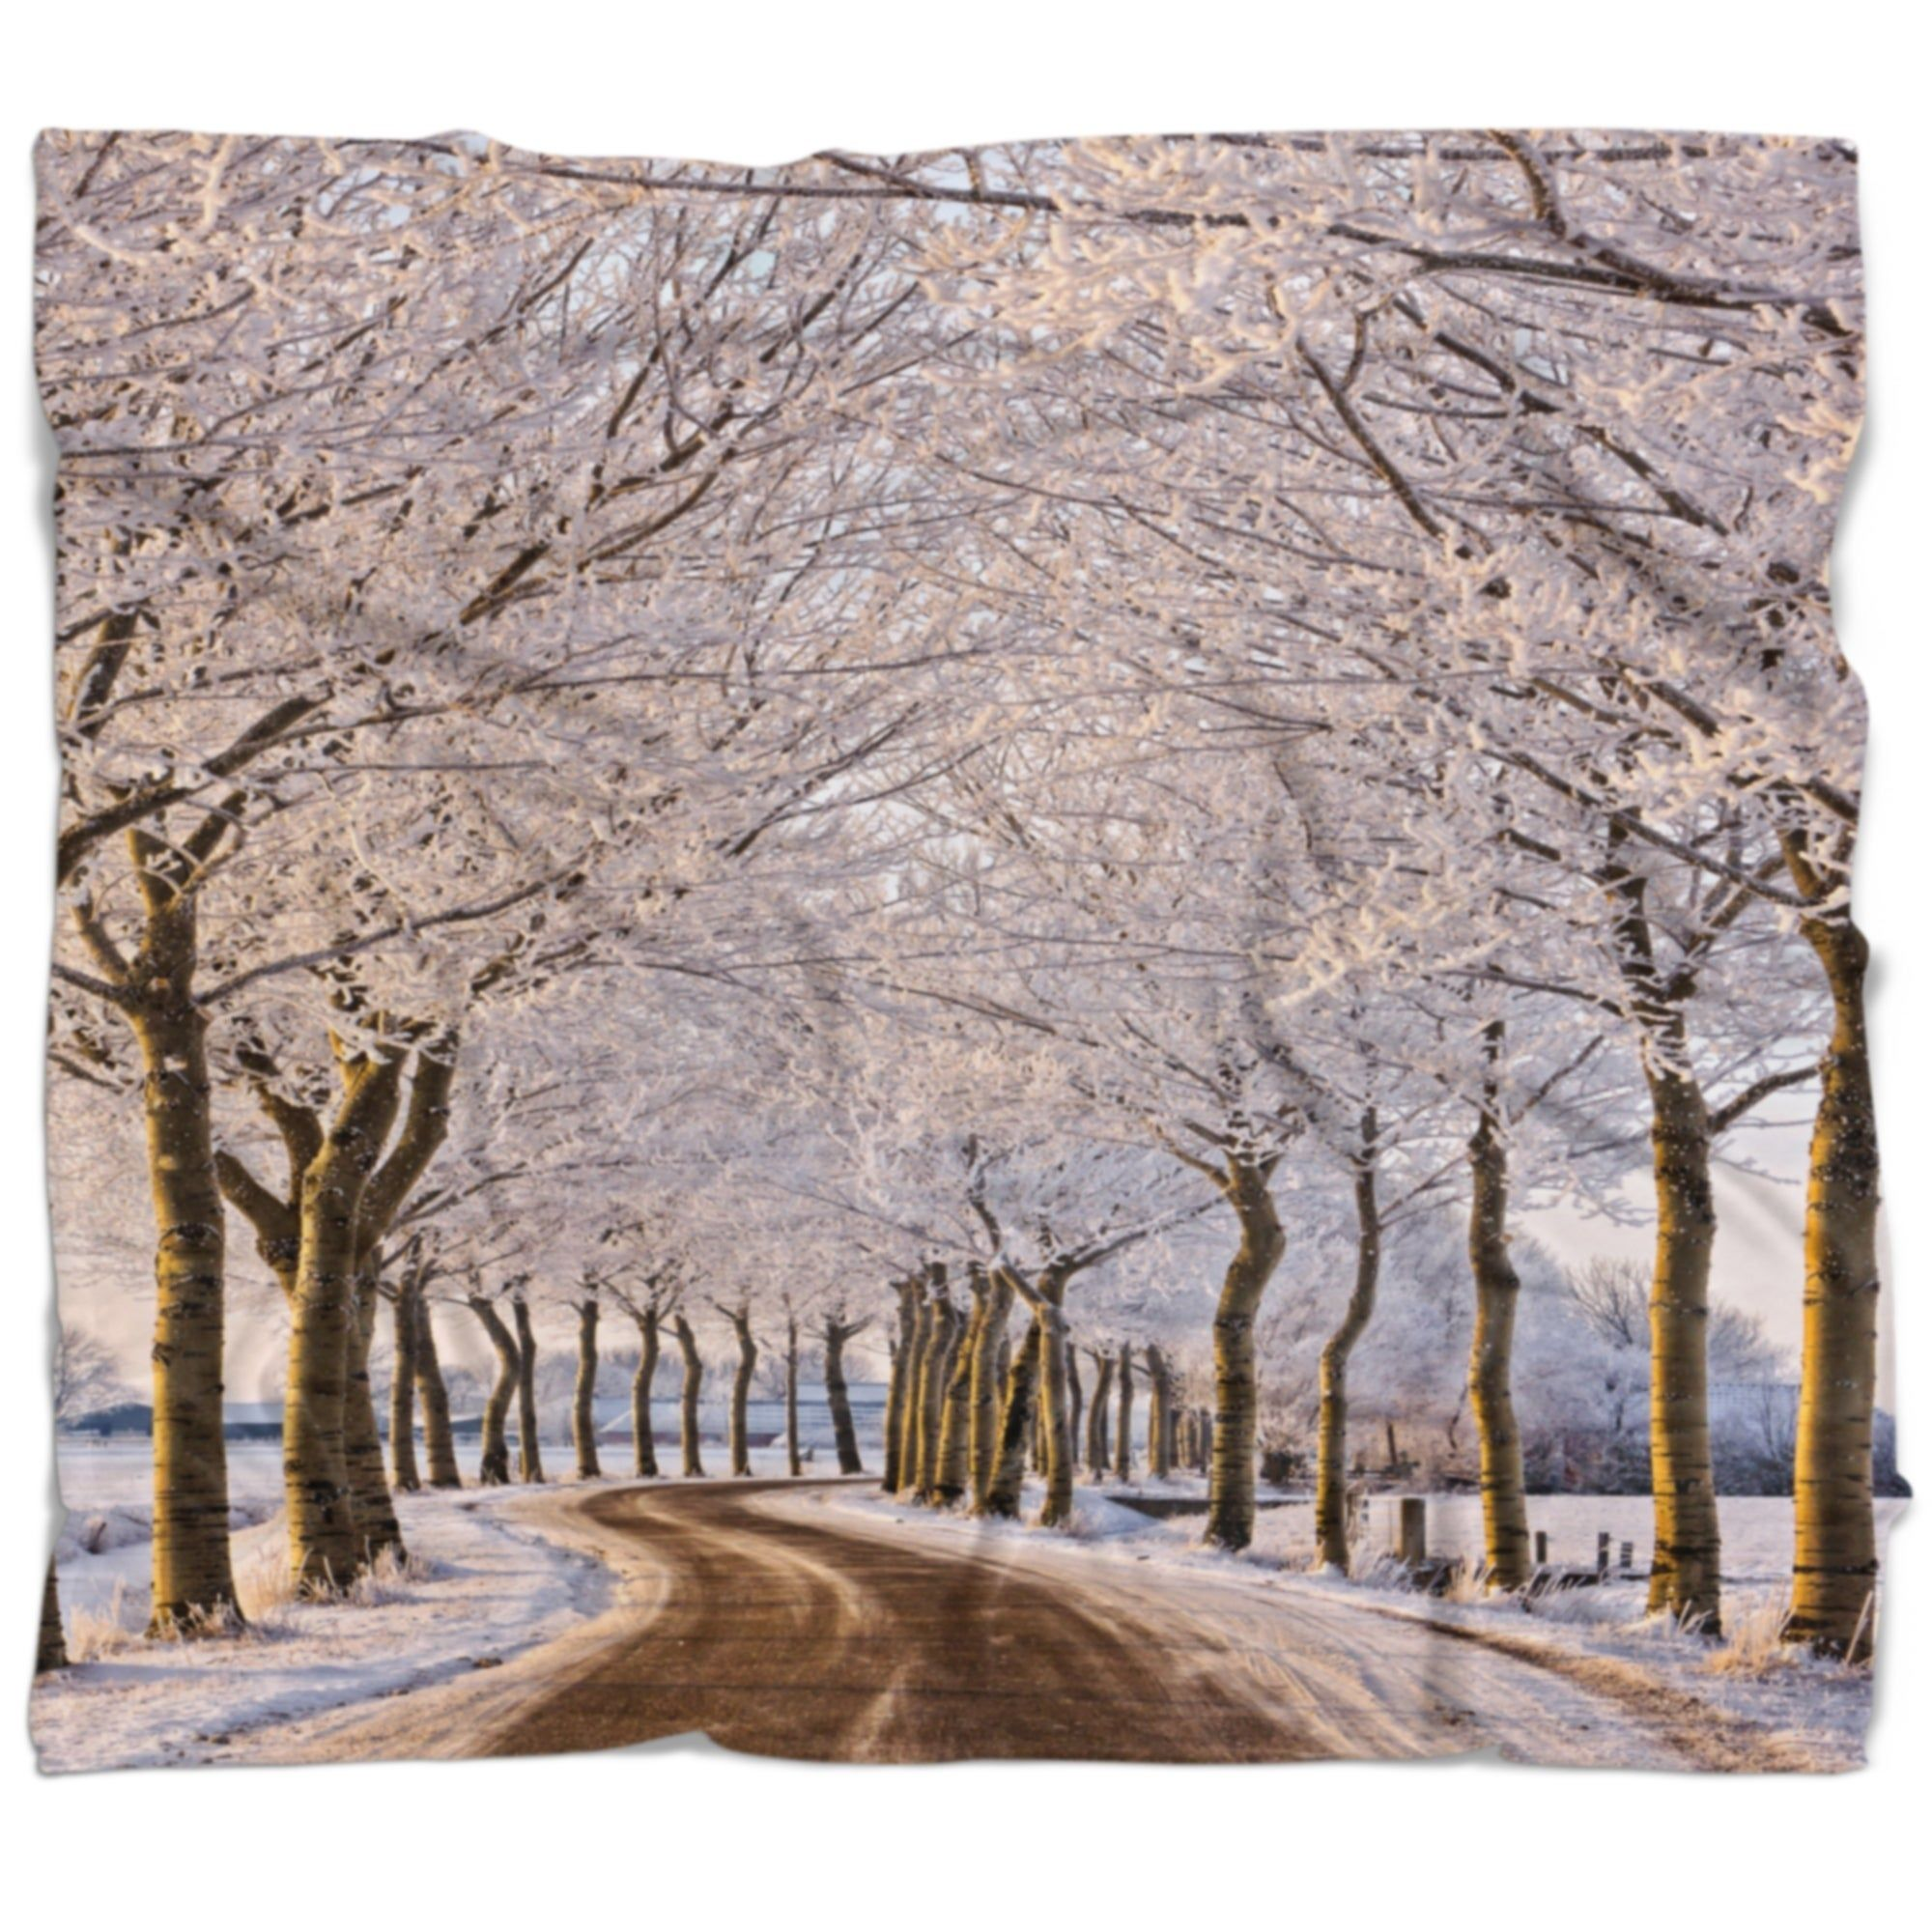 Designart 'Trees And Road in White Winter' Landscape Fleece Throw Blanket (71 in. x 59 in.), DESIGN ART #winterlandscape